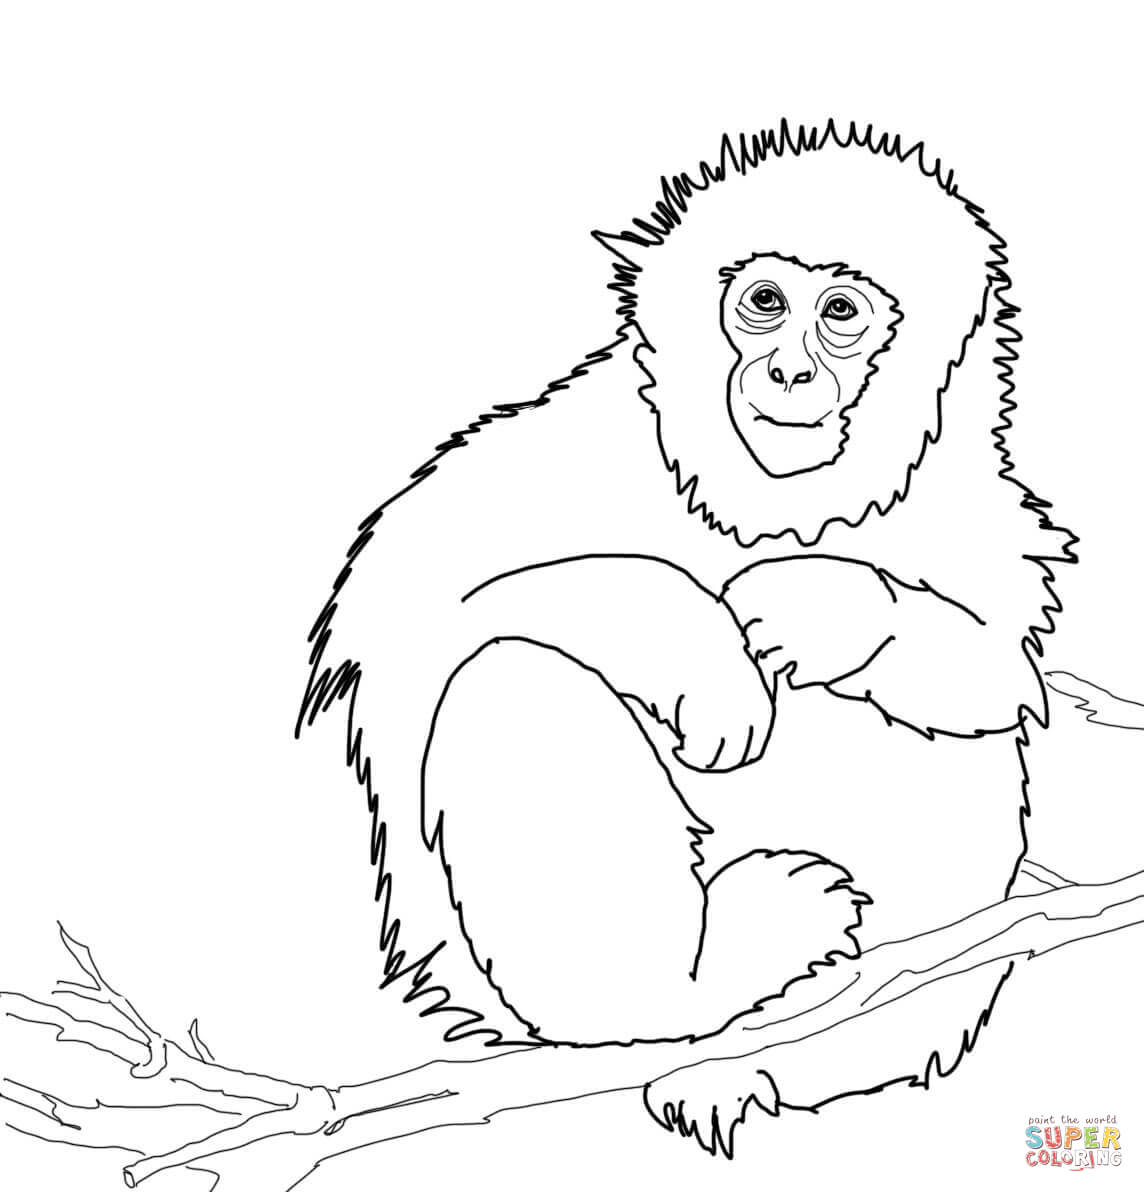 Japanese Macaque Or Snow Monkey Coloring Page Free Printable